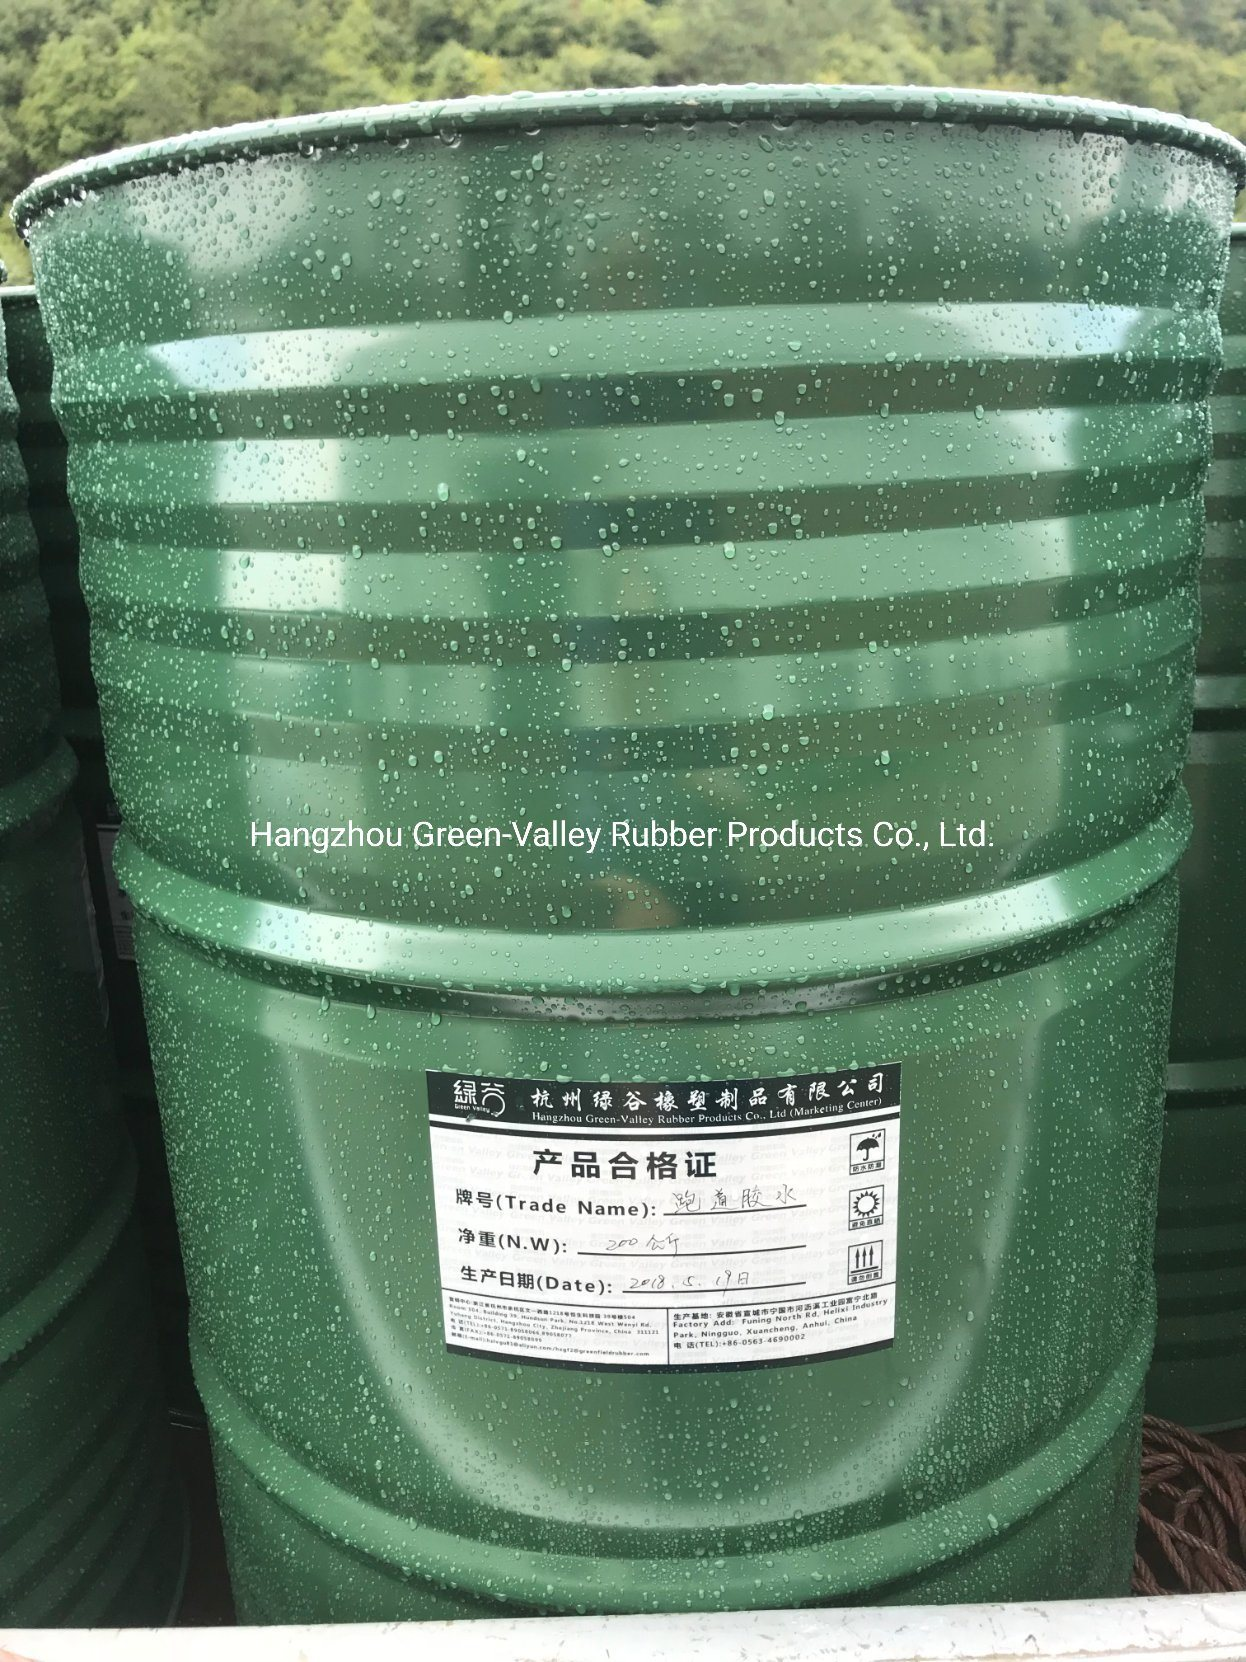 hangzhou green valley rubber products co ltd